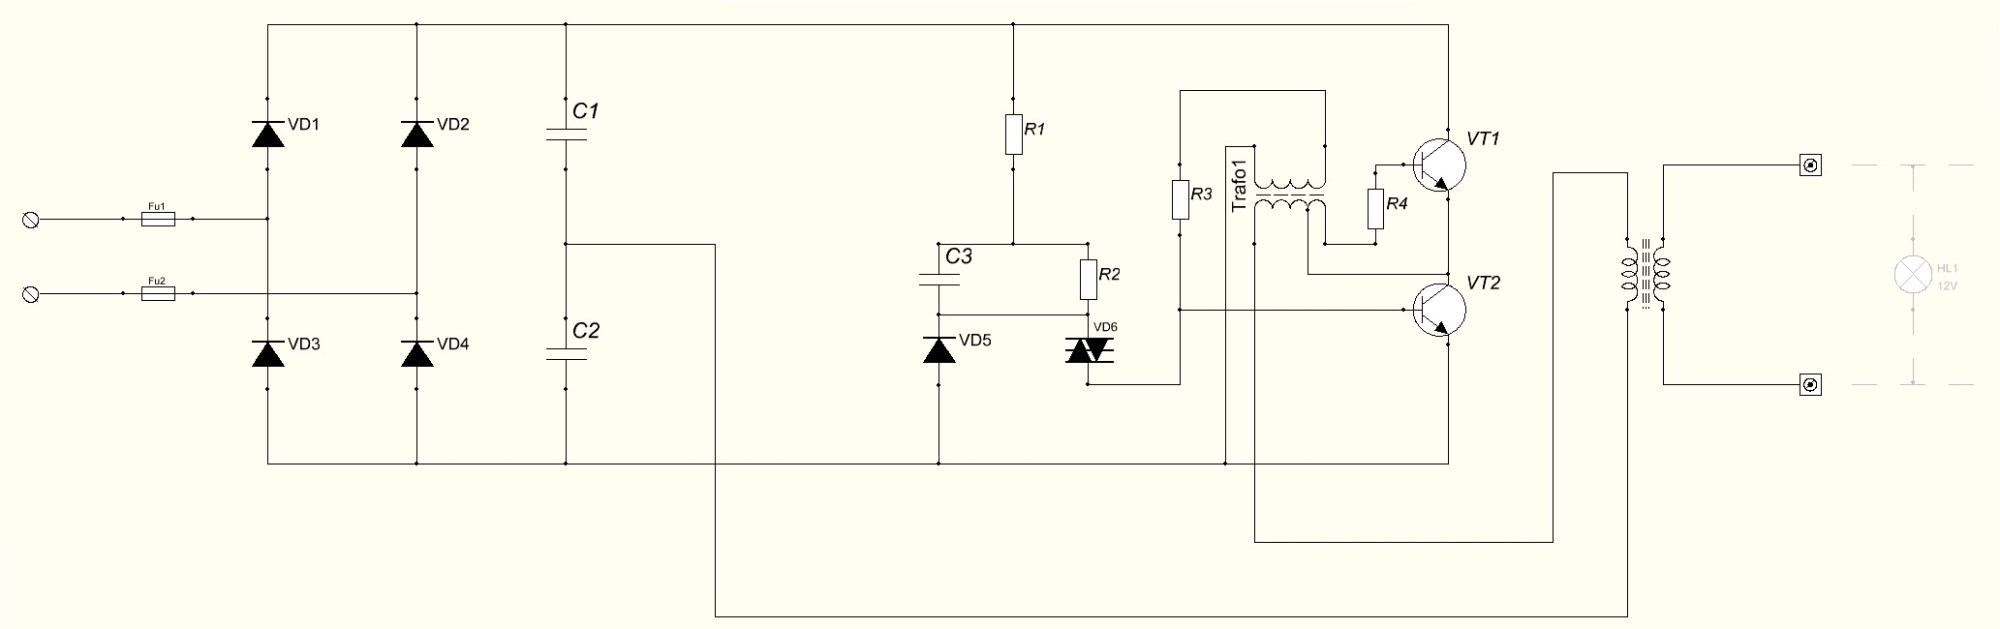 hight resolution of file wiring diagram of power supply for halogen lamps jpg